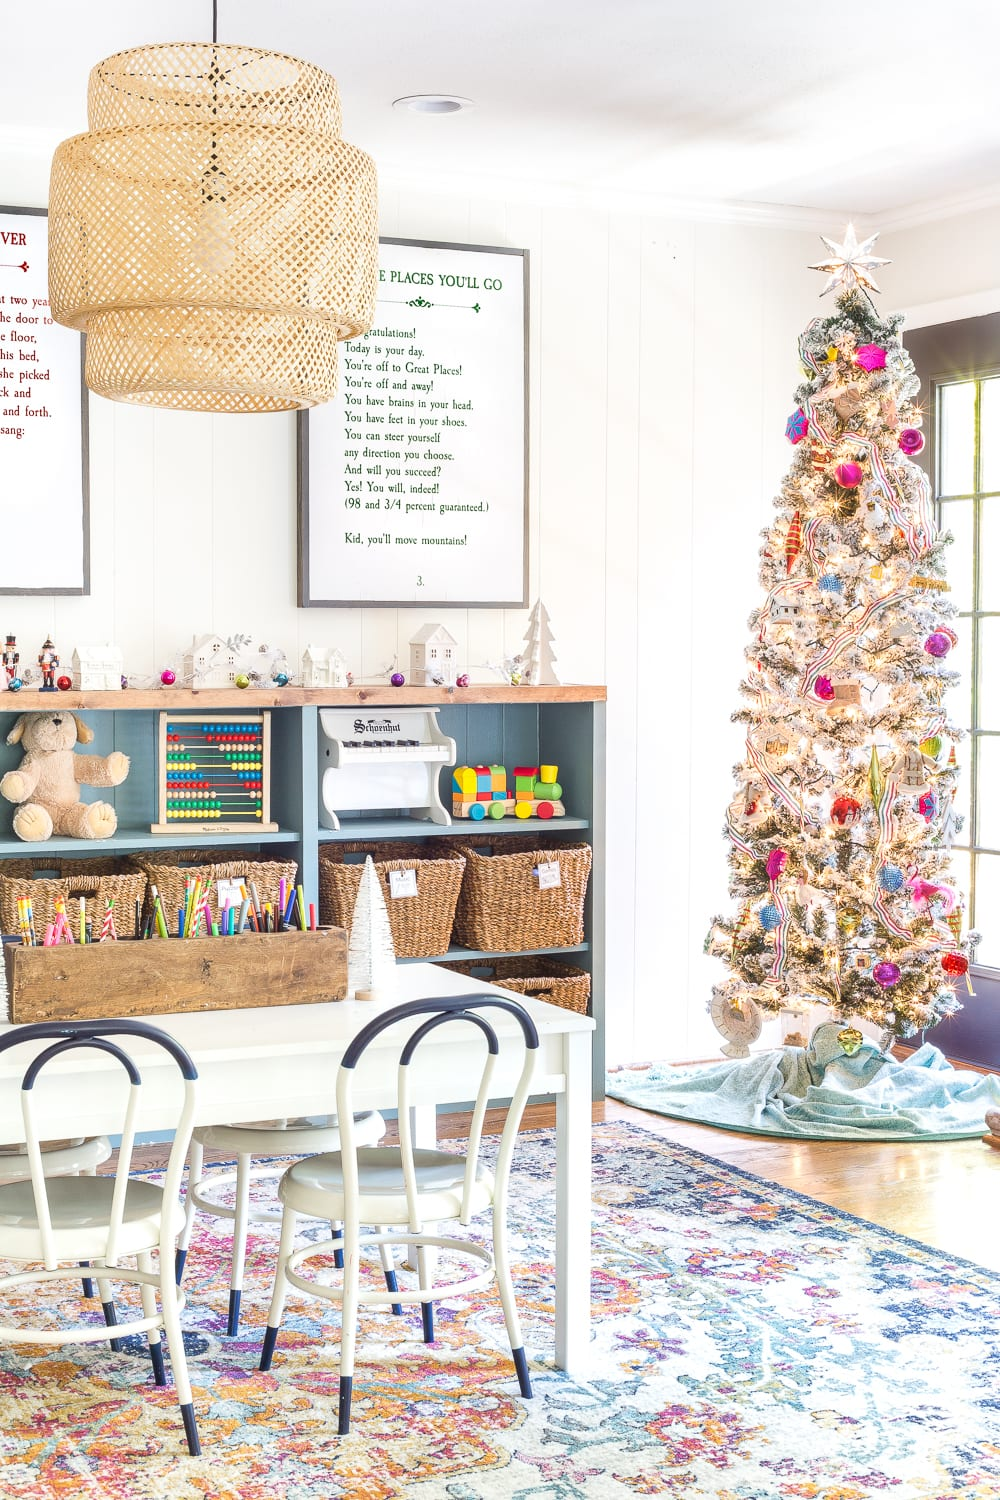 Kids' playroom Christmas tree filled with homemade preschool ornaments